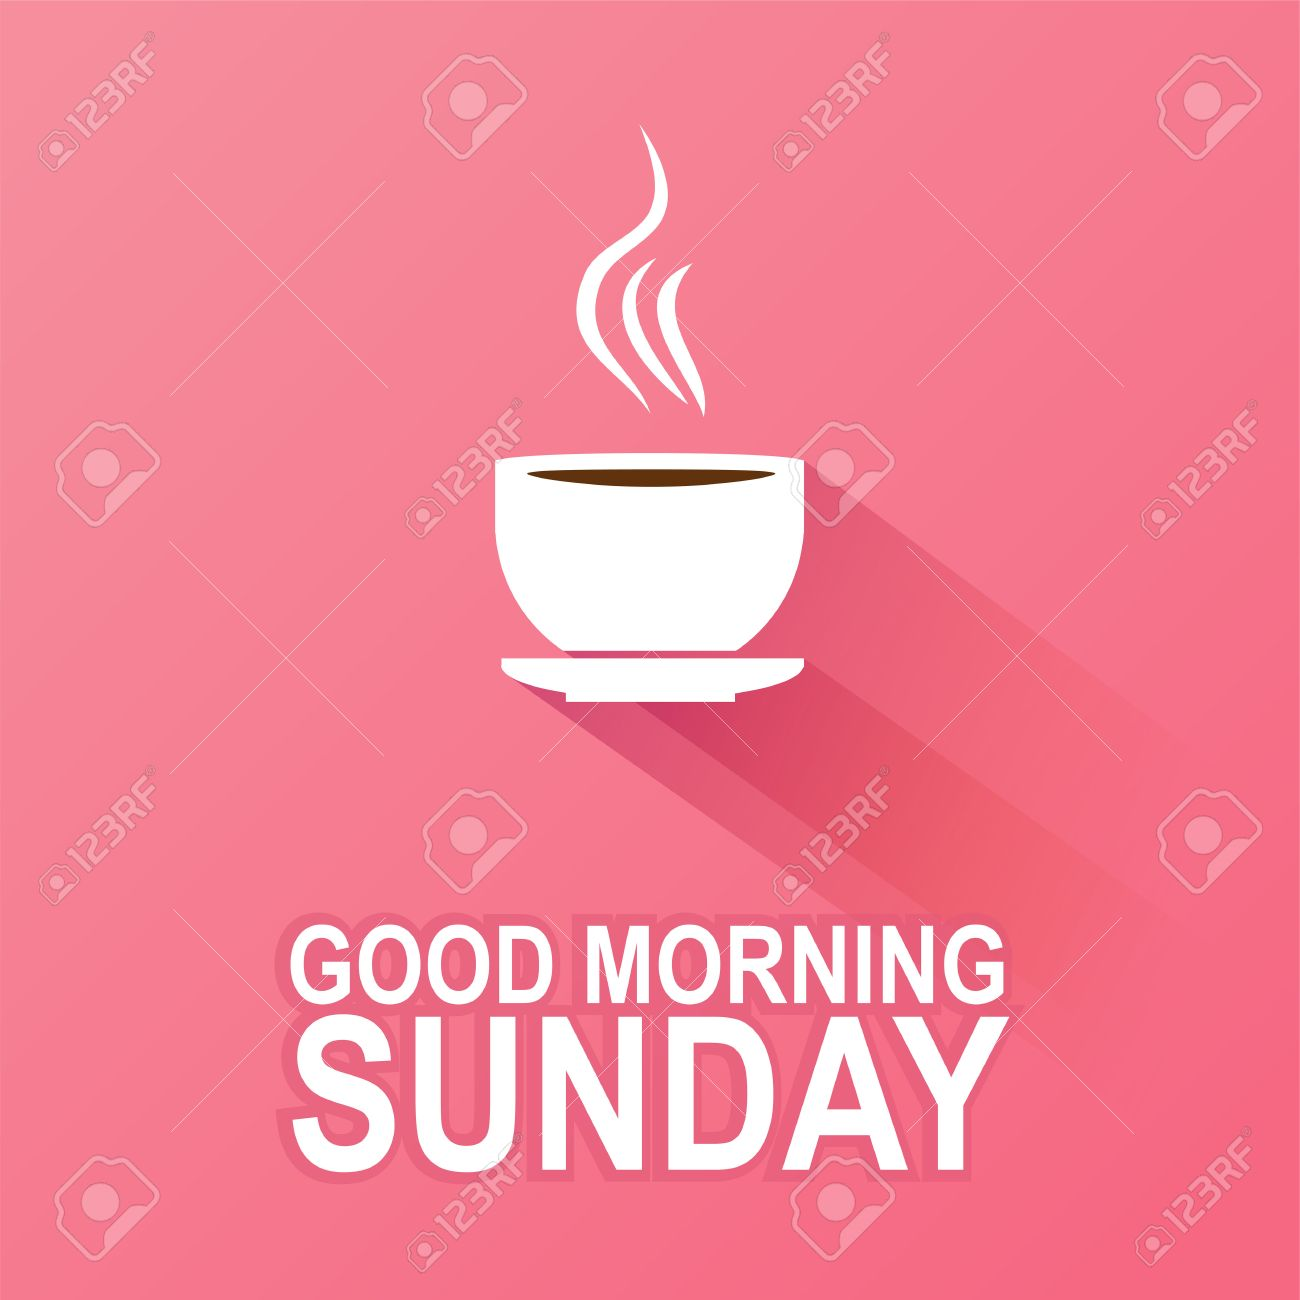 Text Good Morning Sunday On A Pink Background Royalty Free Cliparts